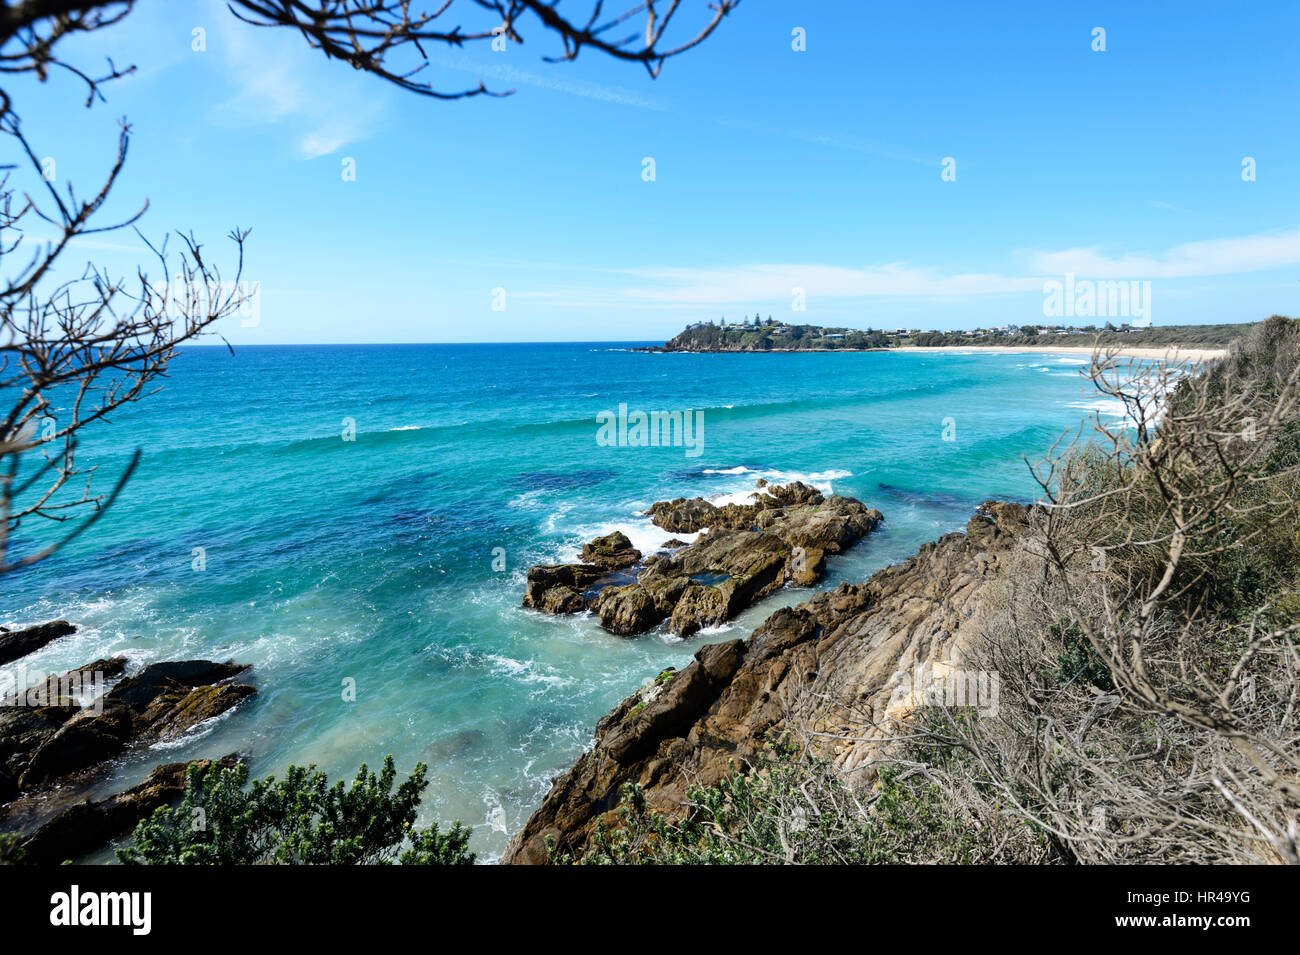 View of the small town of Potato Point seen from Blackfellows Point, New South Wales, Australia - Stock Image